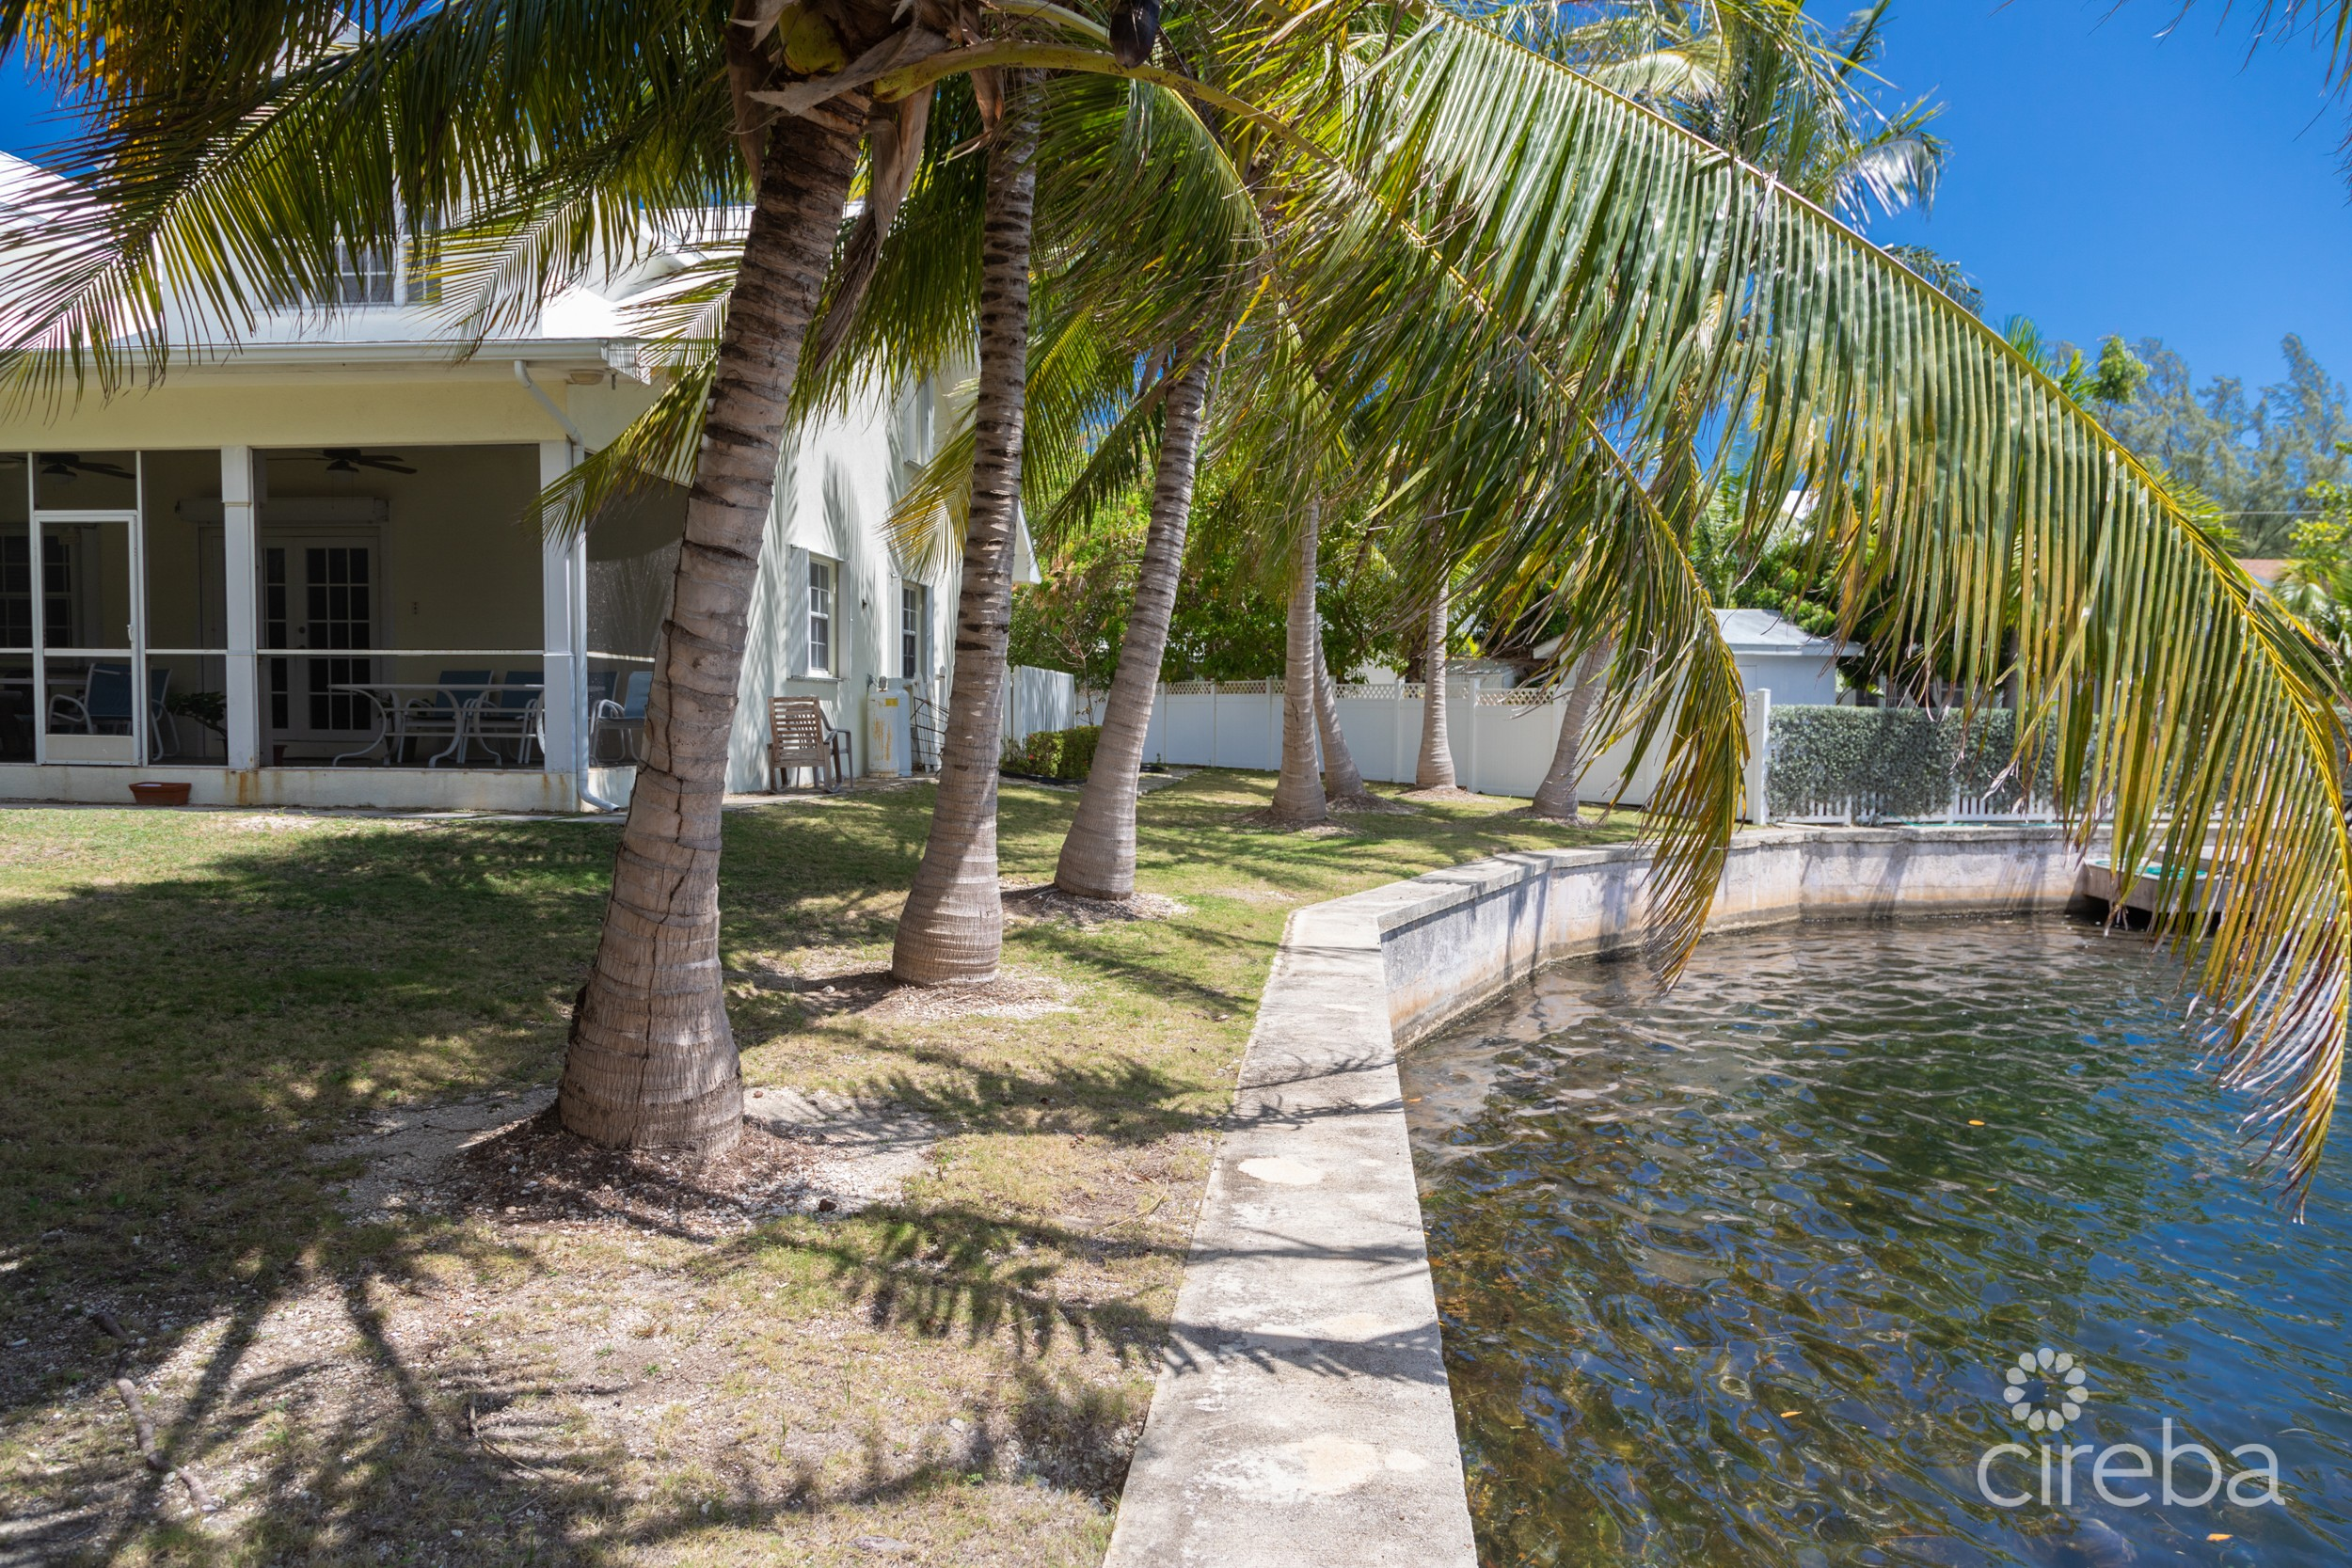 5 UNIT CANAL FRONT RENTAL COMPLEX GOVERNOR'S HARBOUR